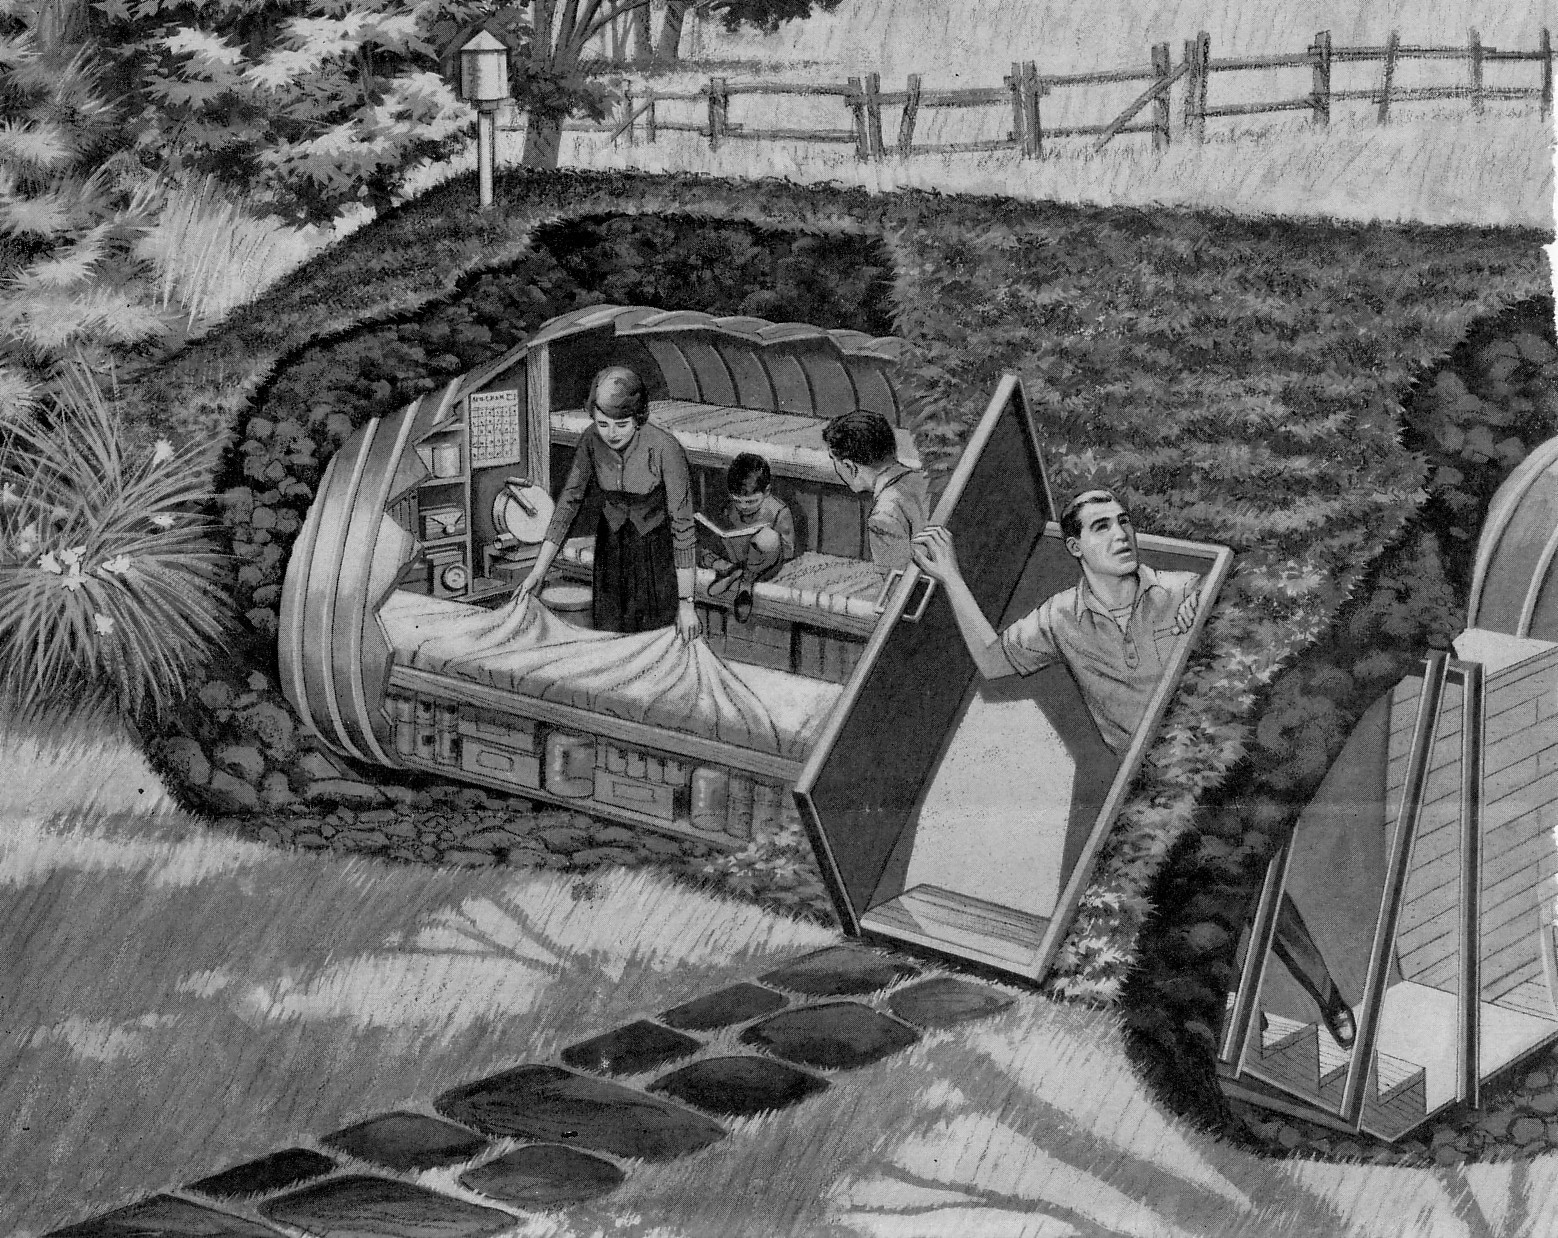 Backyard Fallout Shelter these pictures show how cozy fallout shelters were perfect for the